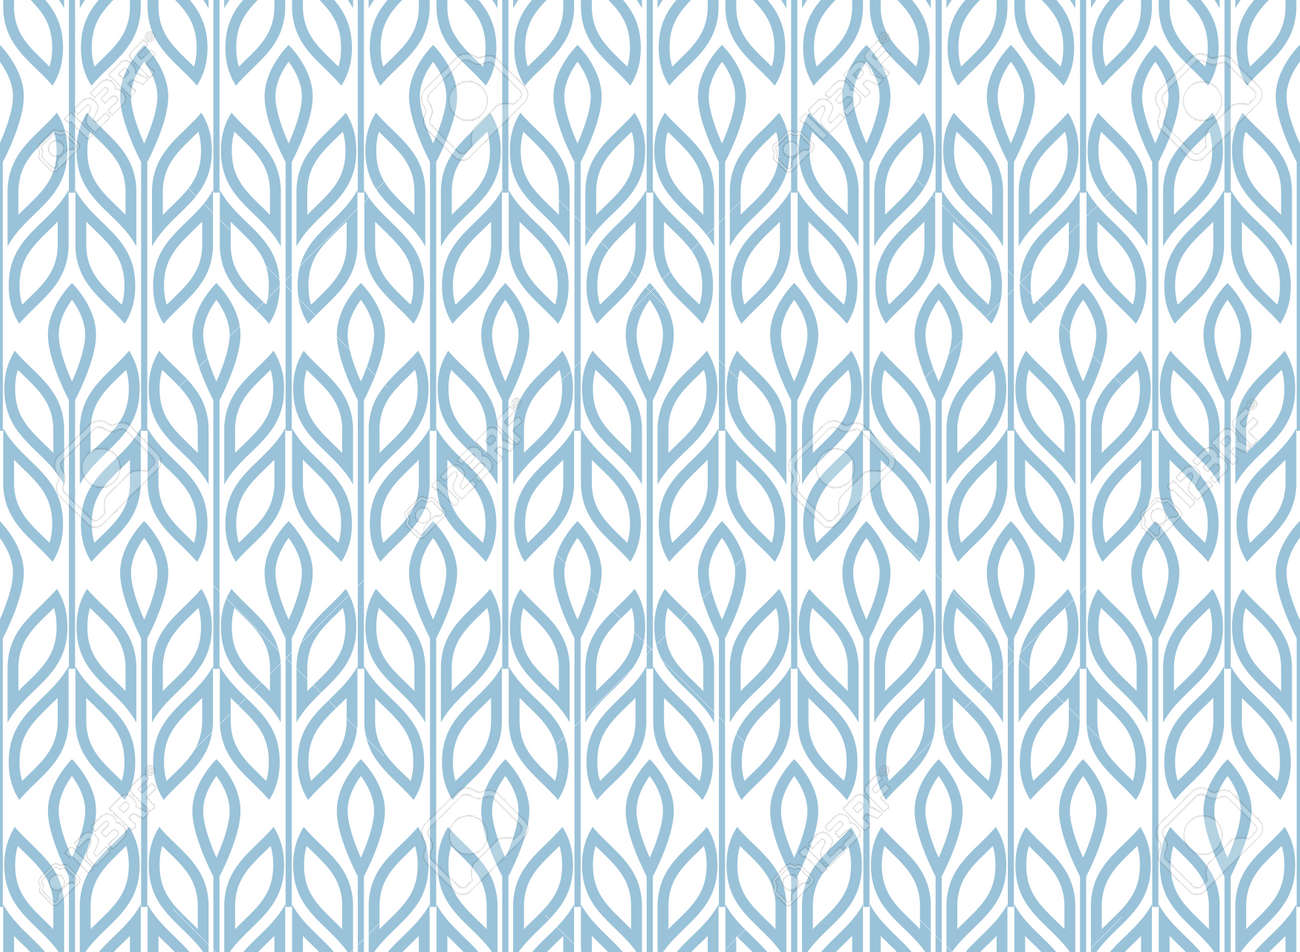 Flower geometric pattern. Seamless vector background. White and blue ornament. Ornament for fabric, wallpaper, packaging. Decorative print - 170173011